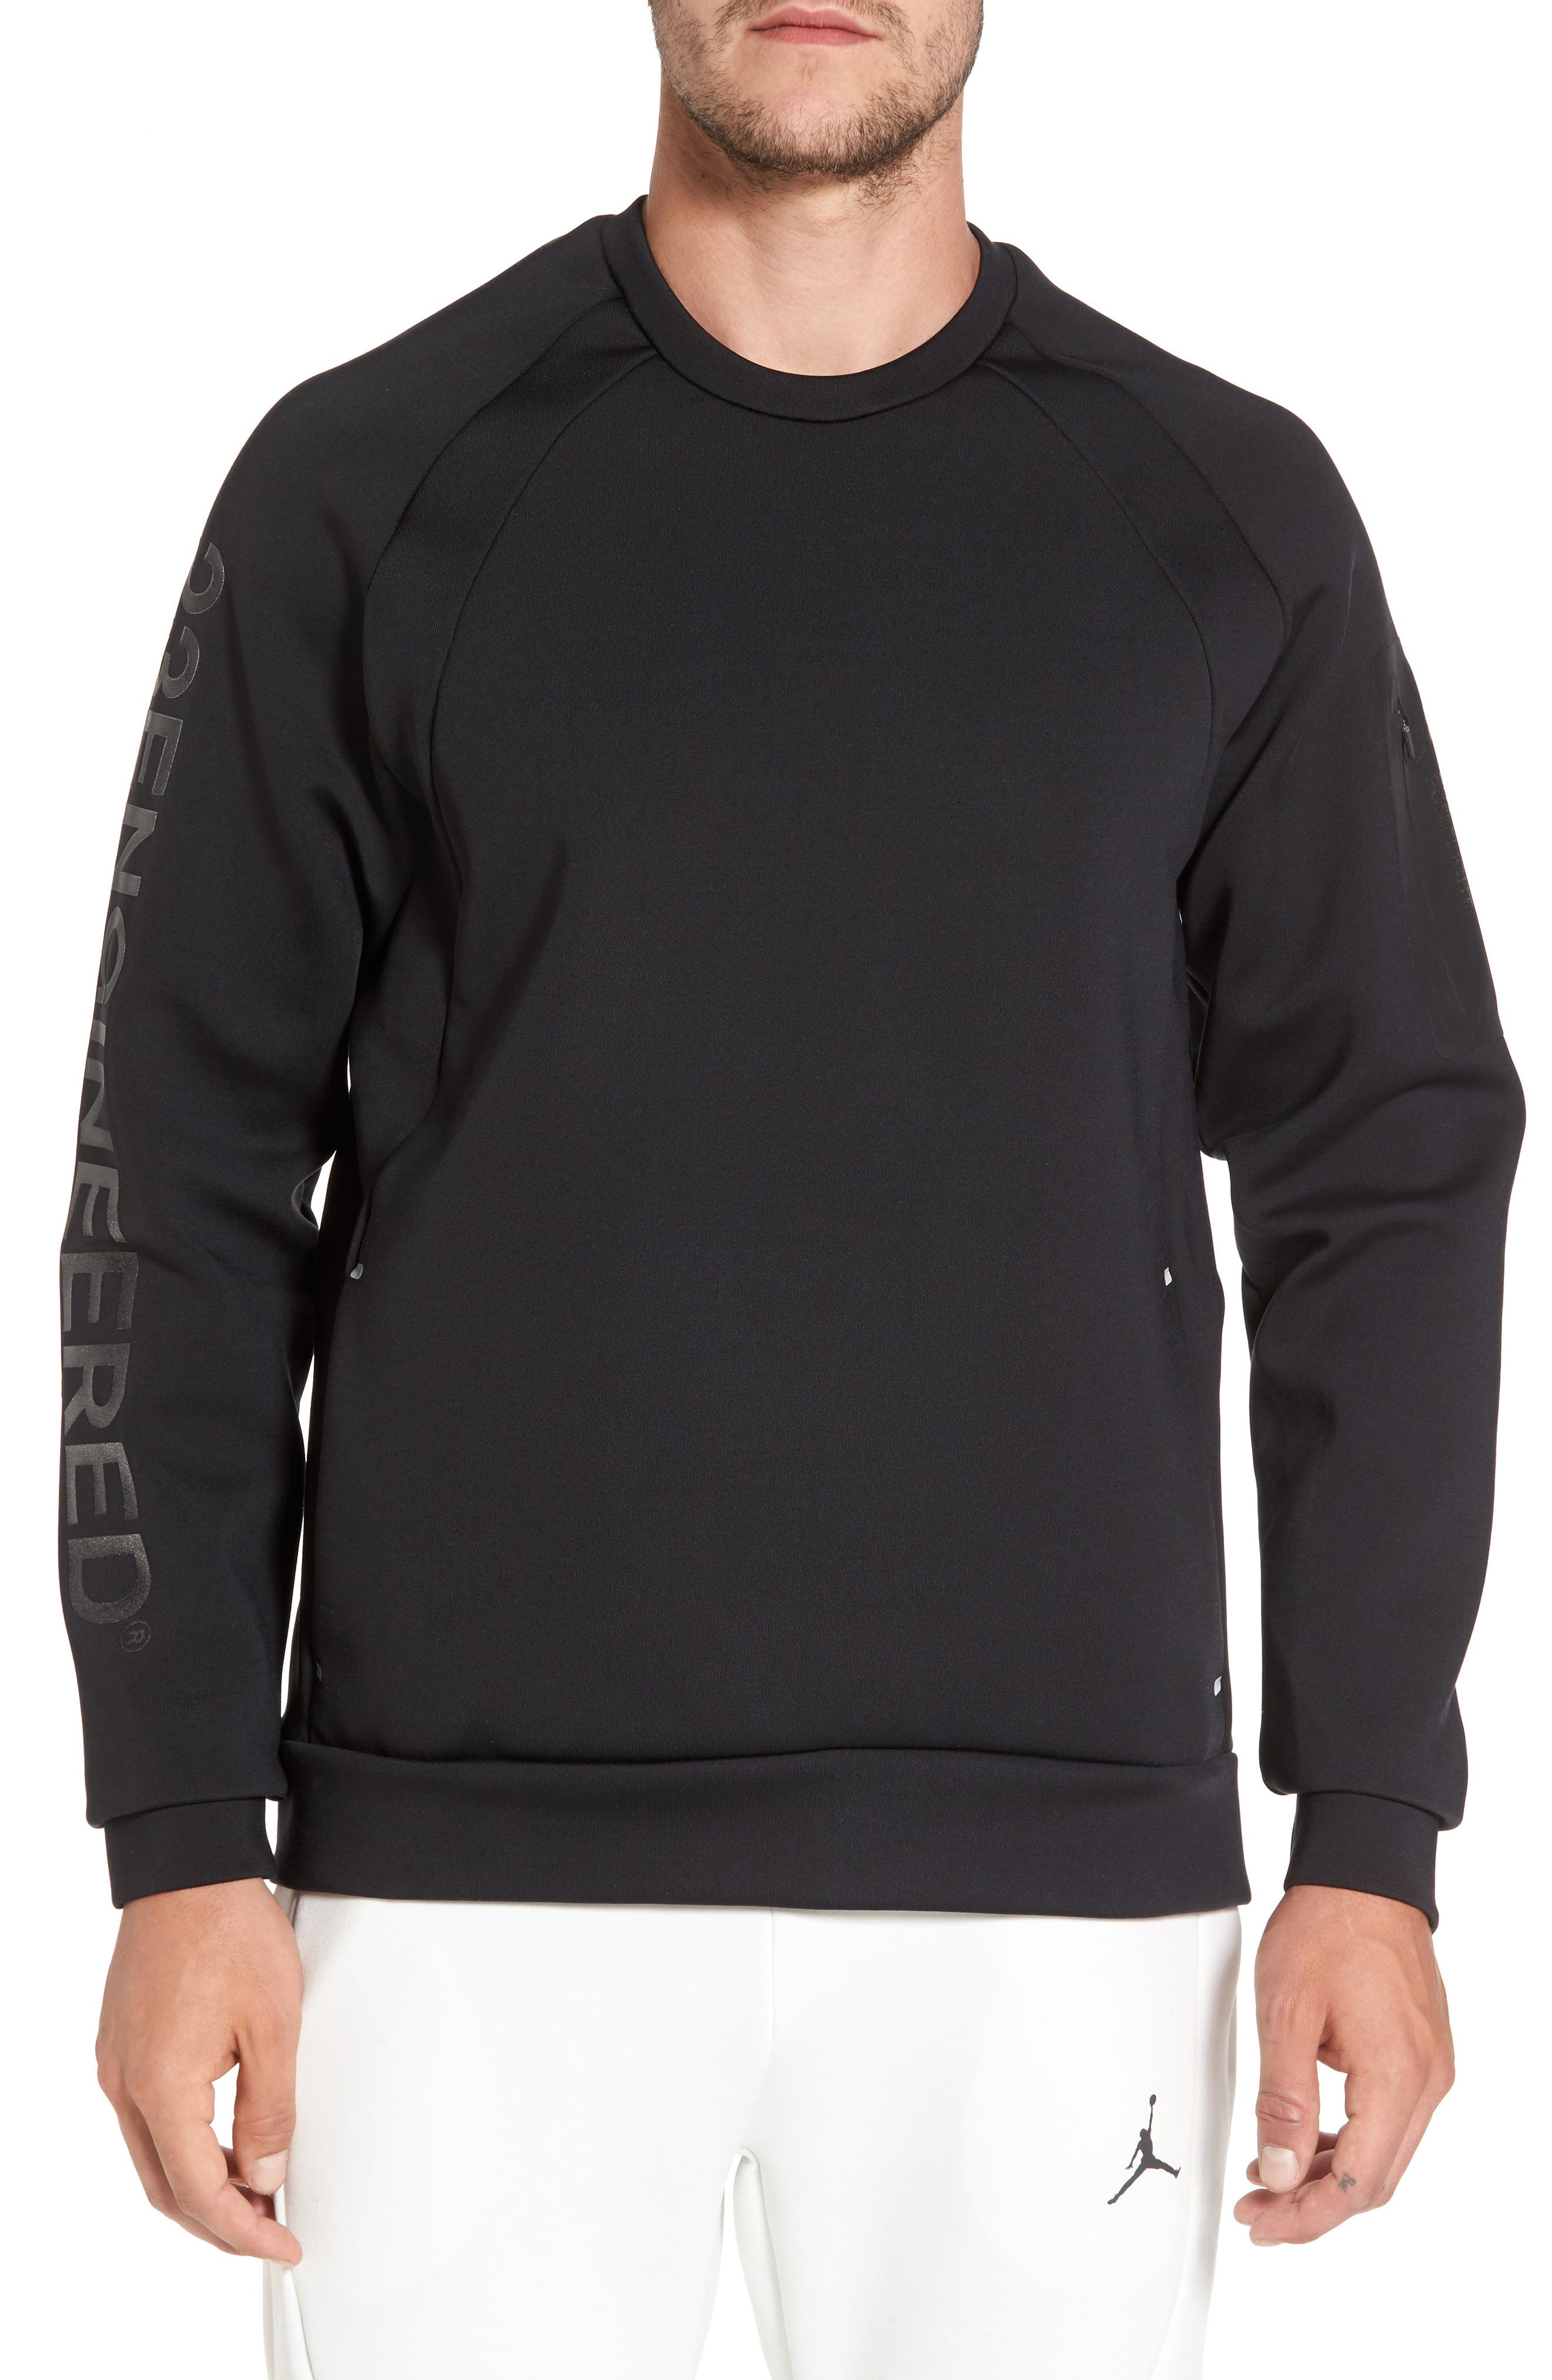 Sportswear Flight Tech Shield Crewneck,                             Main thumbnail 1, color,                             010